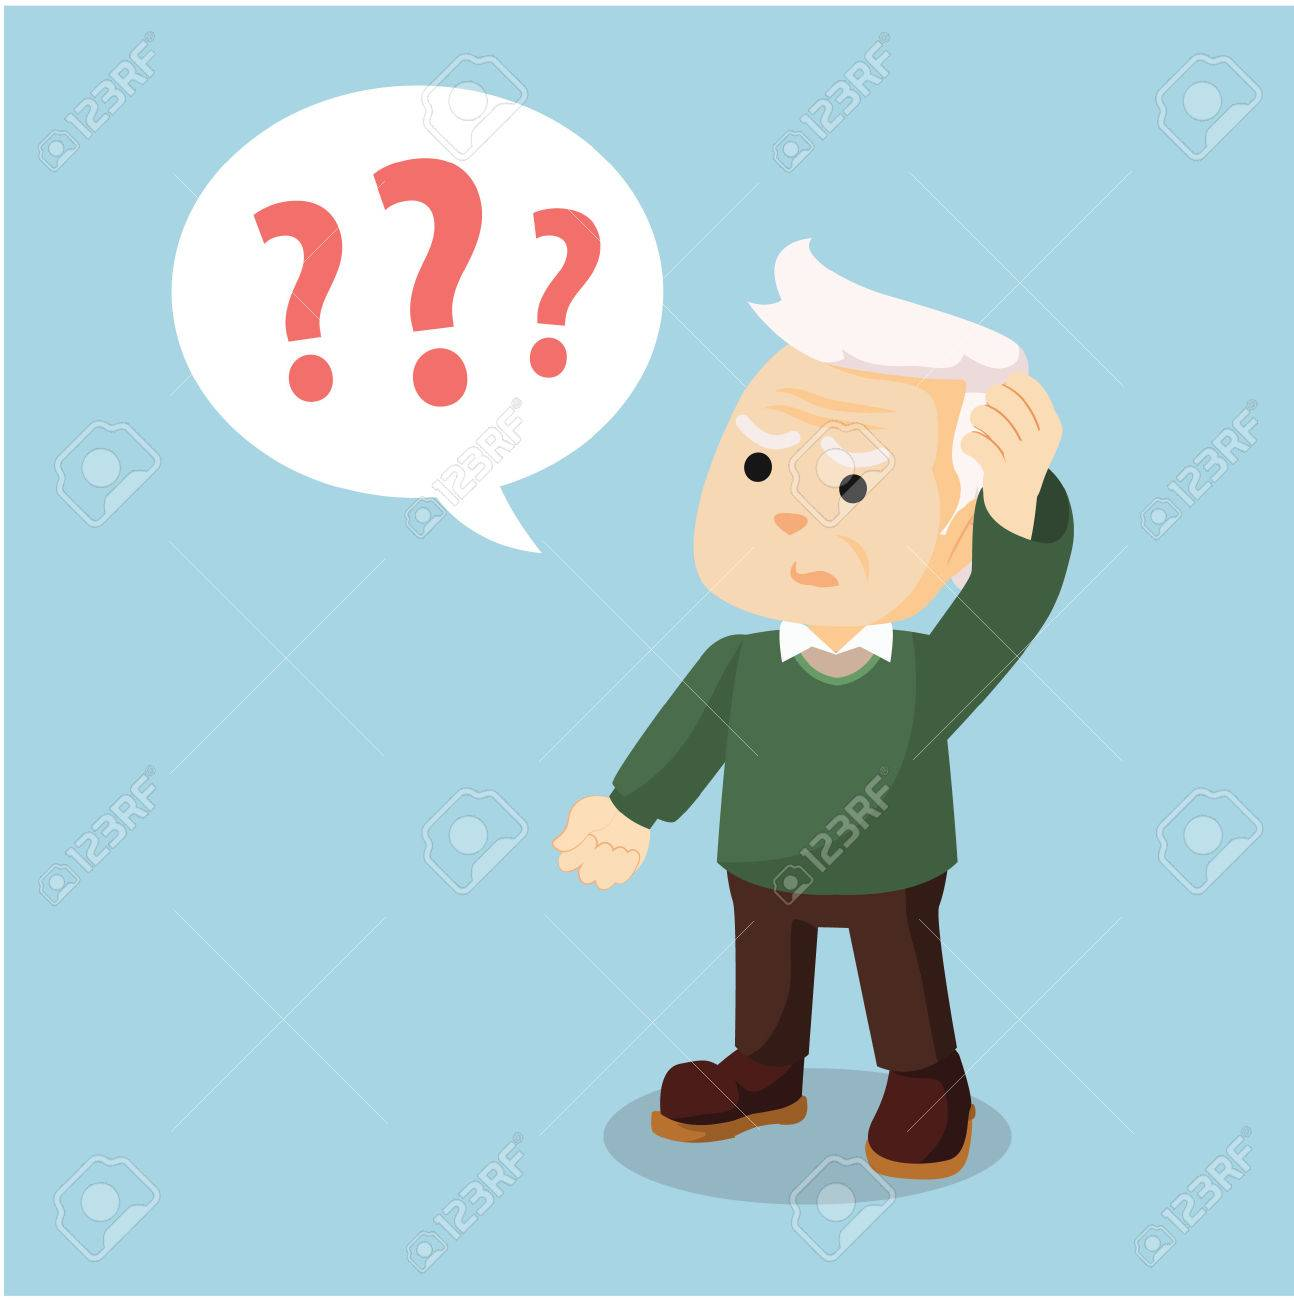 old man confused holding head - 61906879